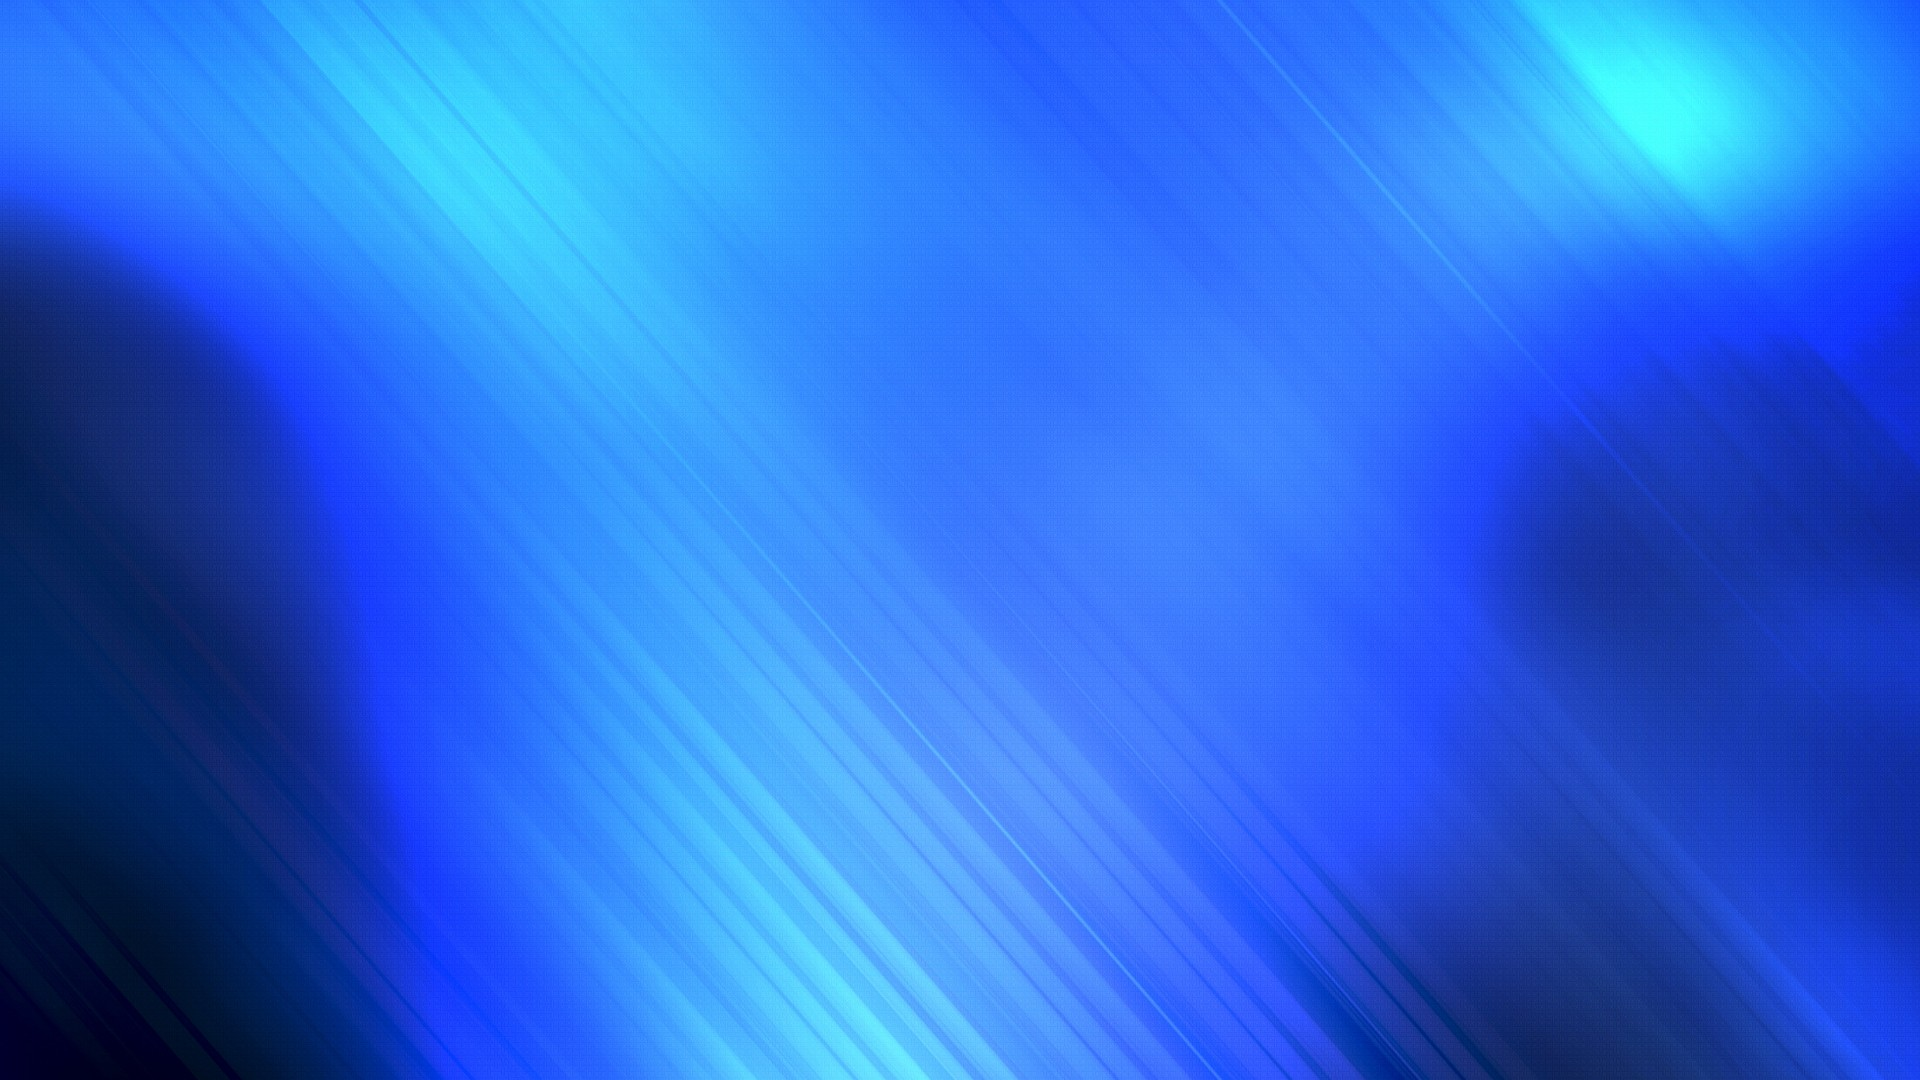 Hd blue wallpaper - SF Wallpaper